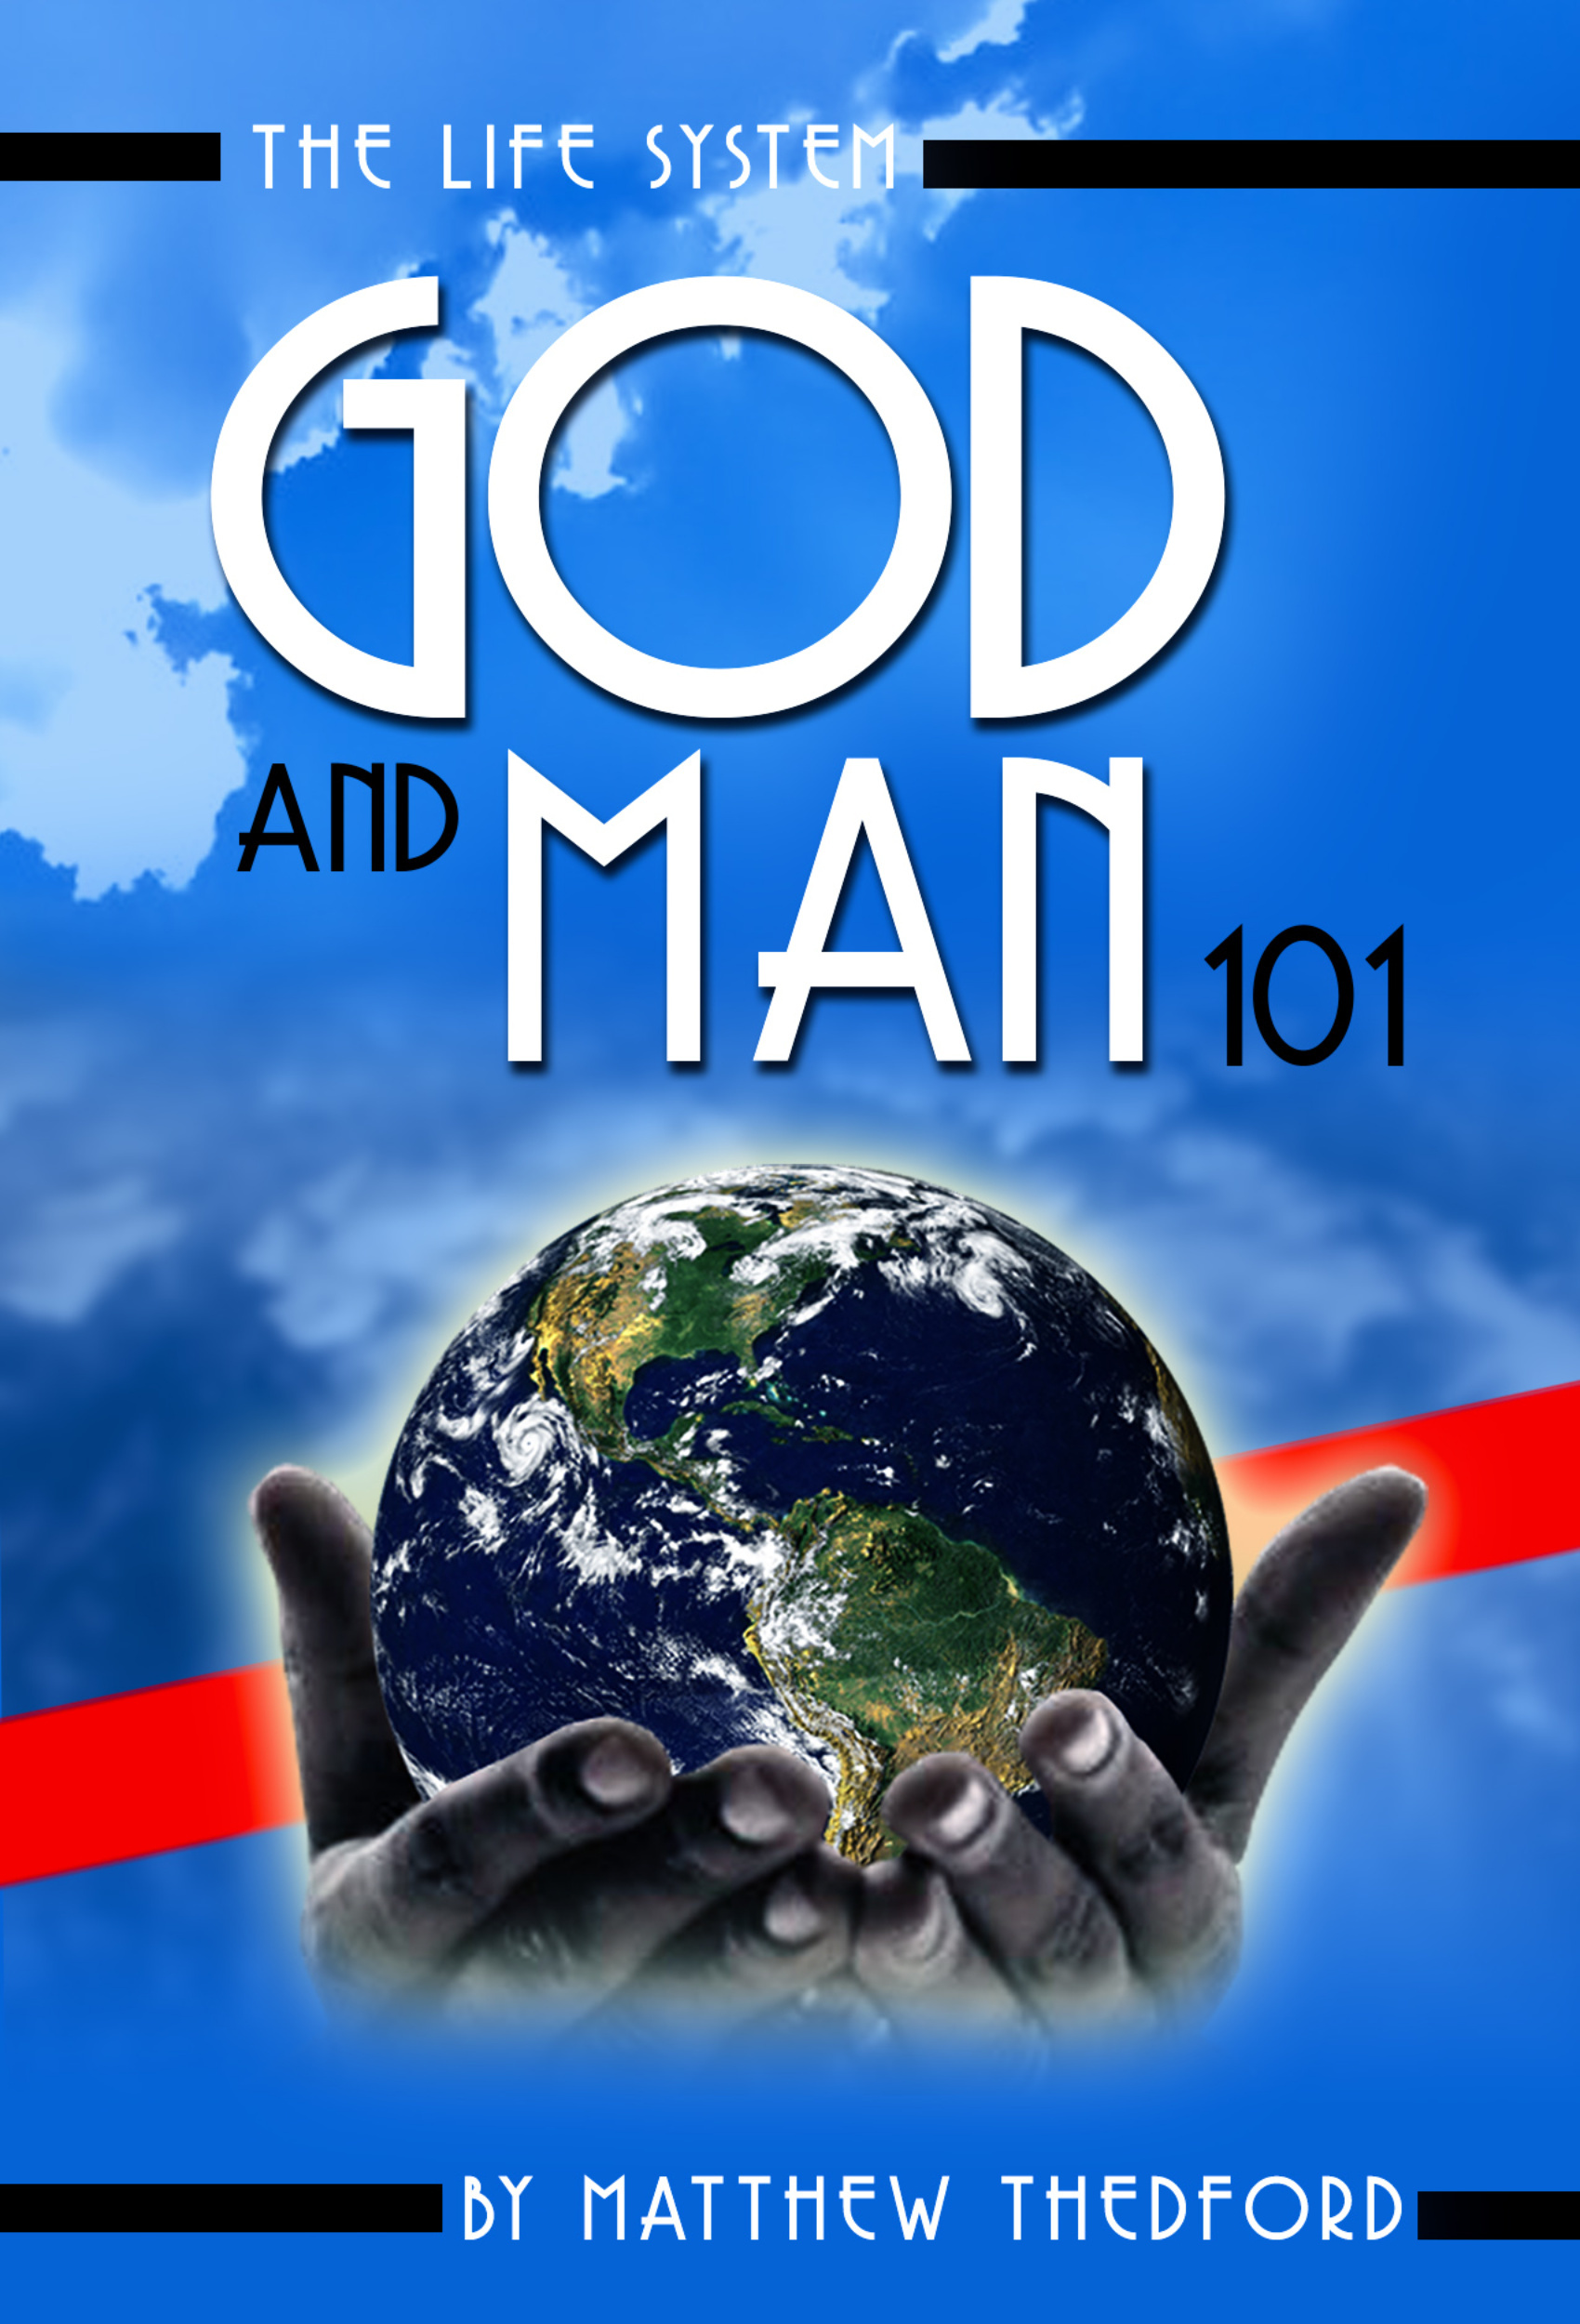 The Life System, God and Man 101: How To Imitate God By Upholding All Things With The Words Of Your Mouth By: Matthew Thedford